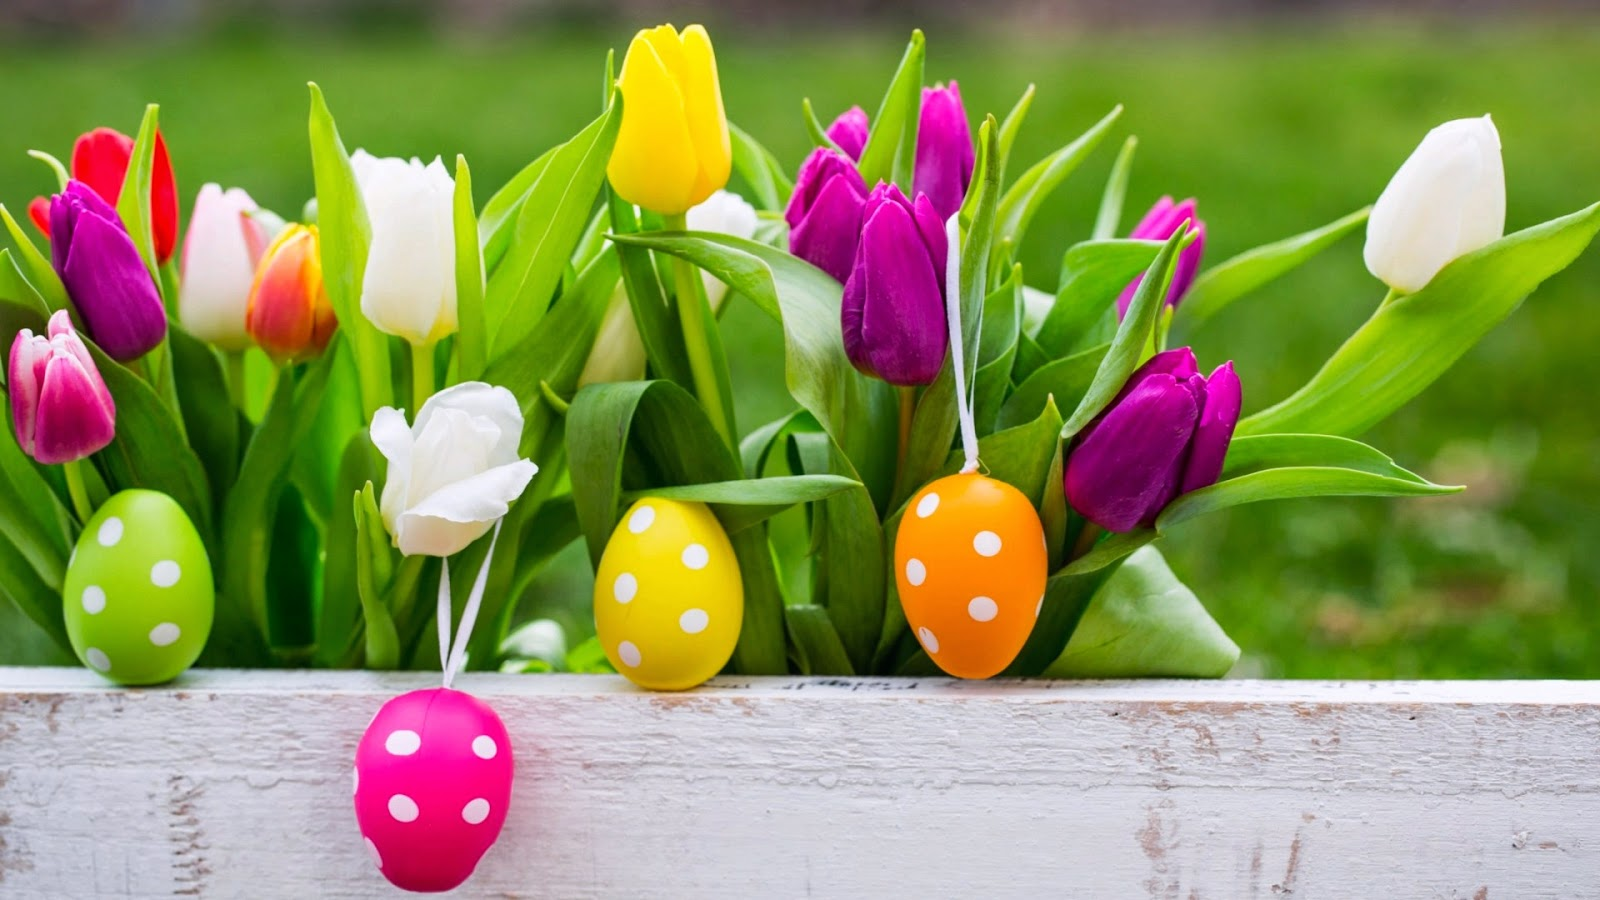 Easter Wallpapers Screensavers HD Easter Images 1600x900